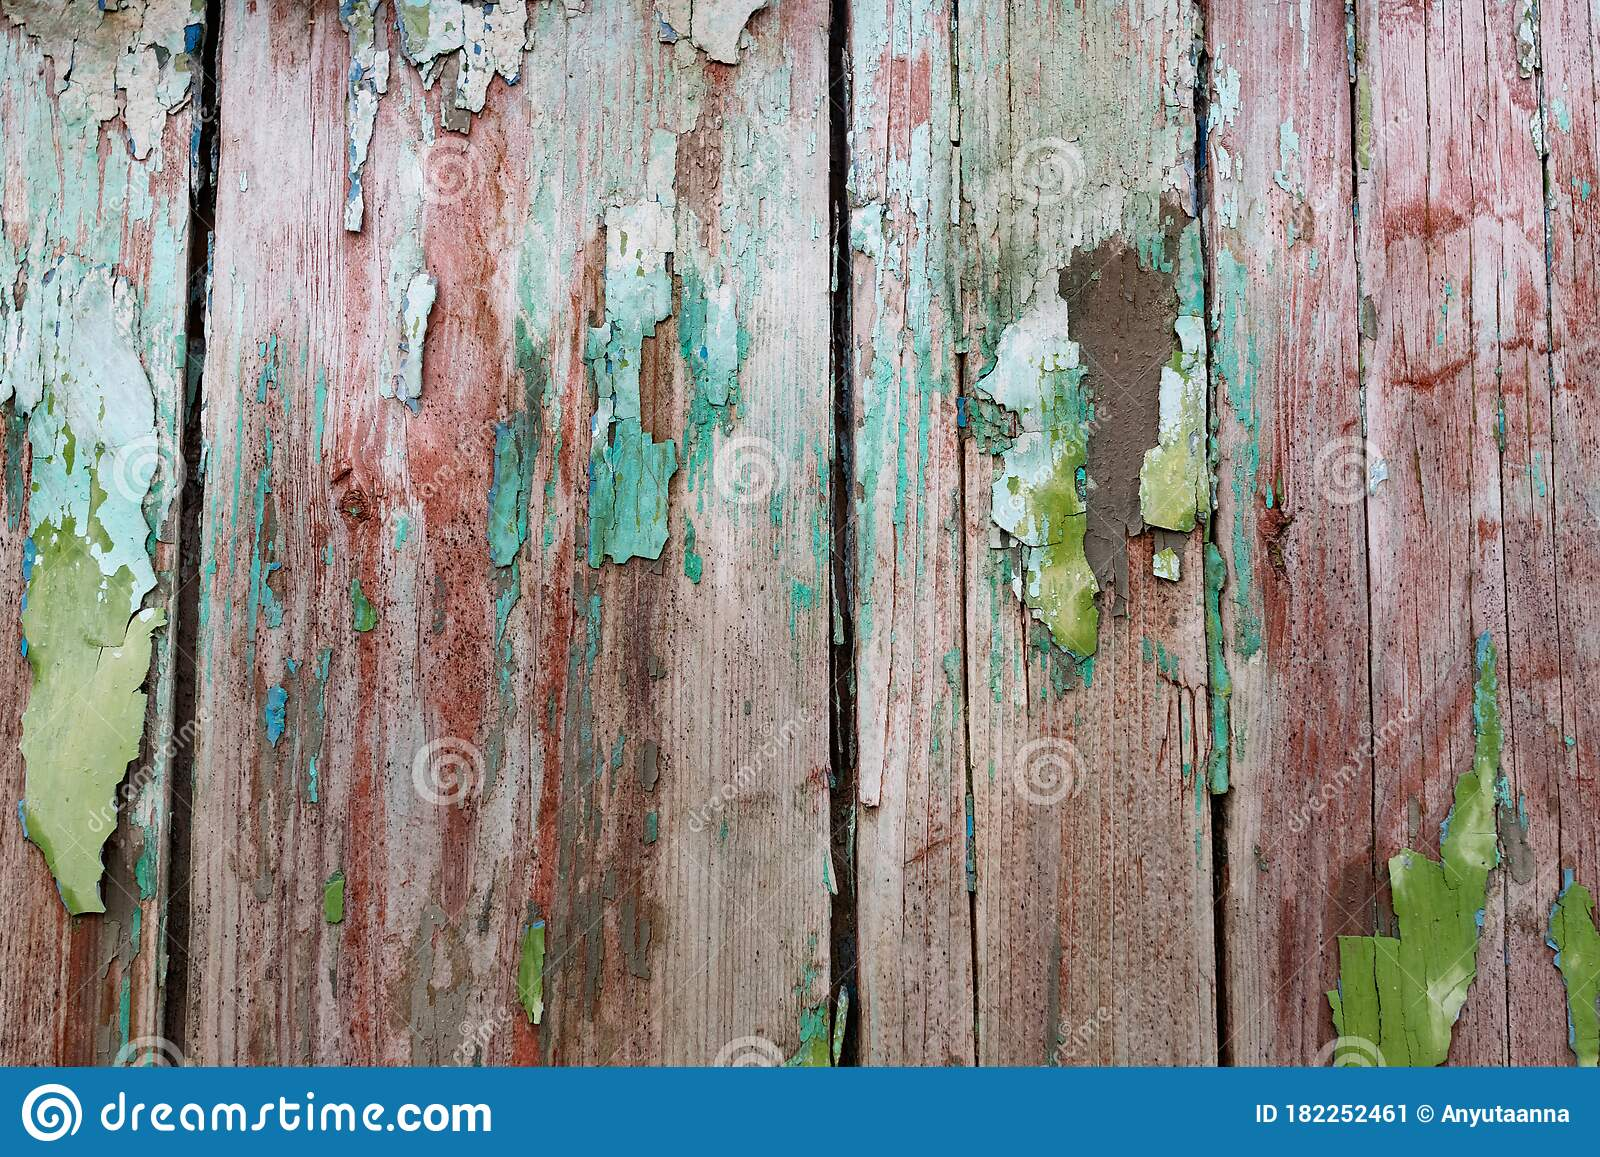 Old Wooden Background With Peeling Paint Vintage Boards With Blue And Green Coating Aquamarine Shades On Brown Stock Image Image Of Gray Brown 182252461